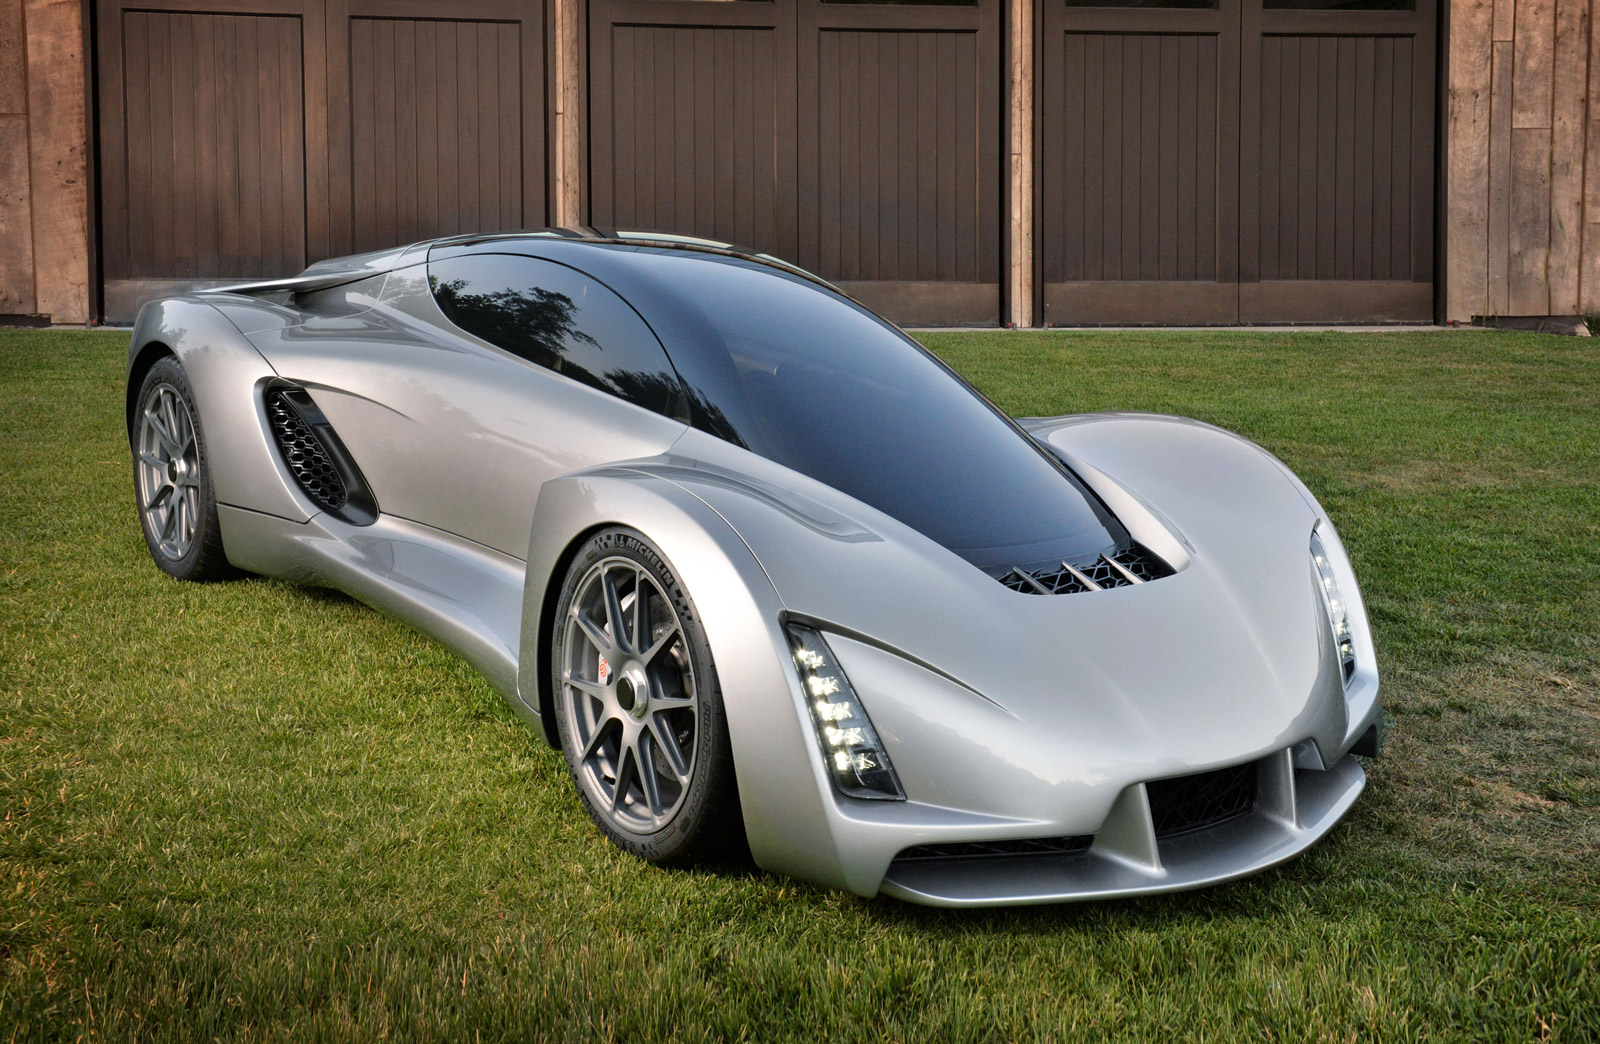 Blade, the World's First 3-D Printed Supercar